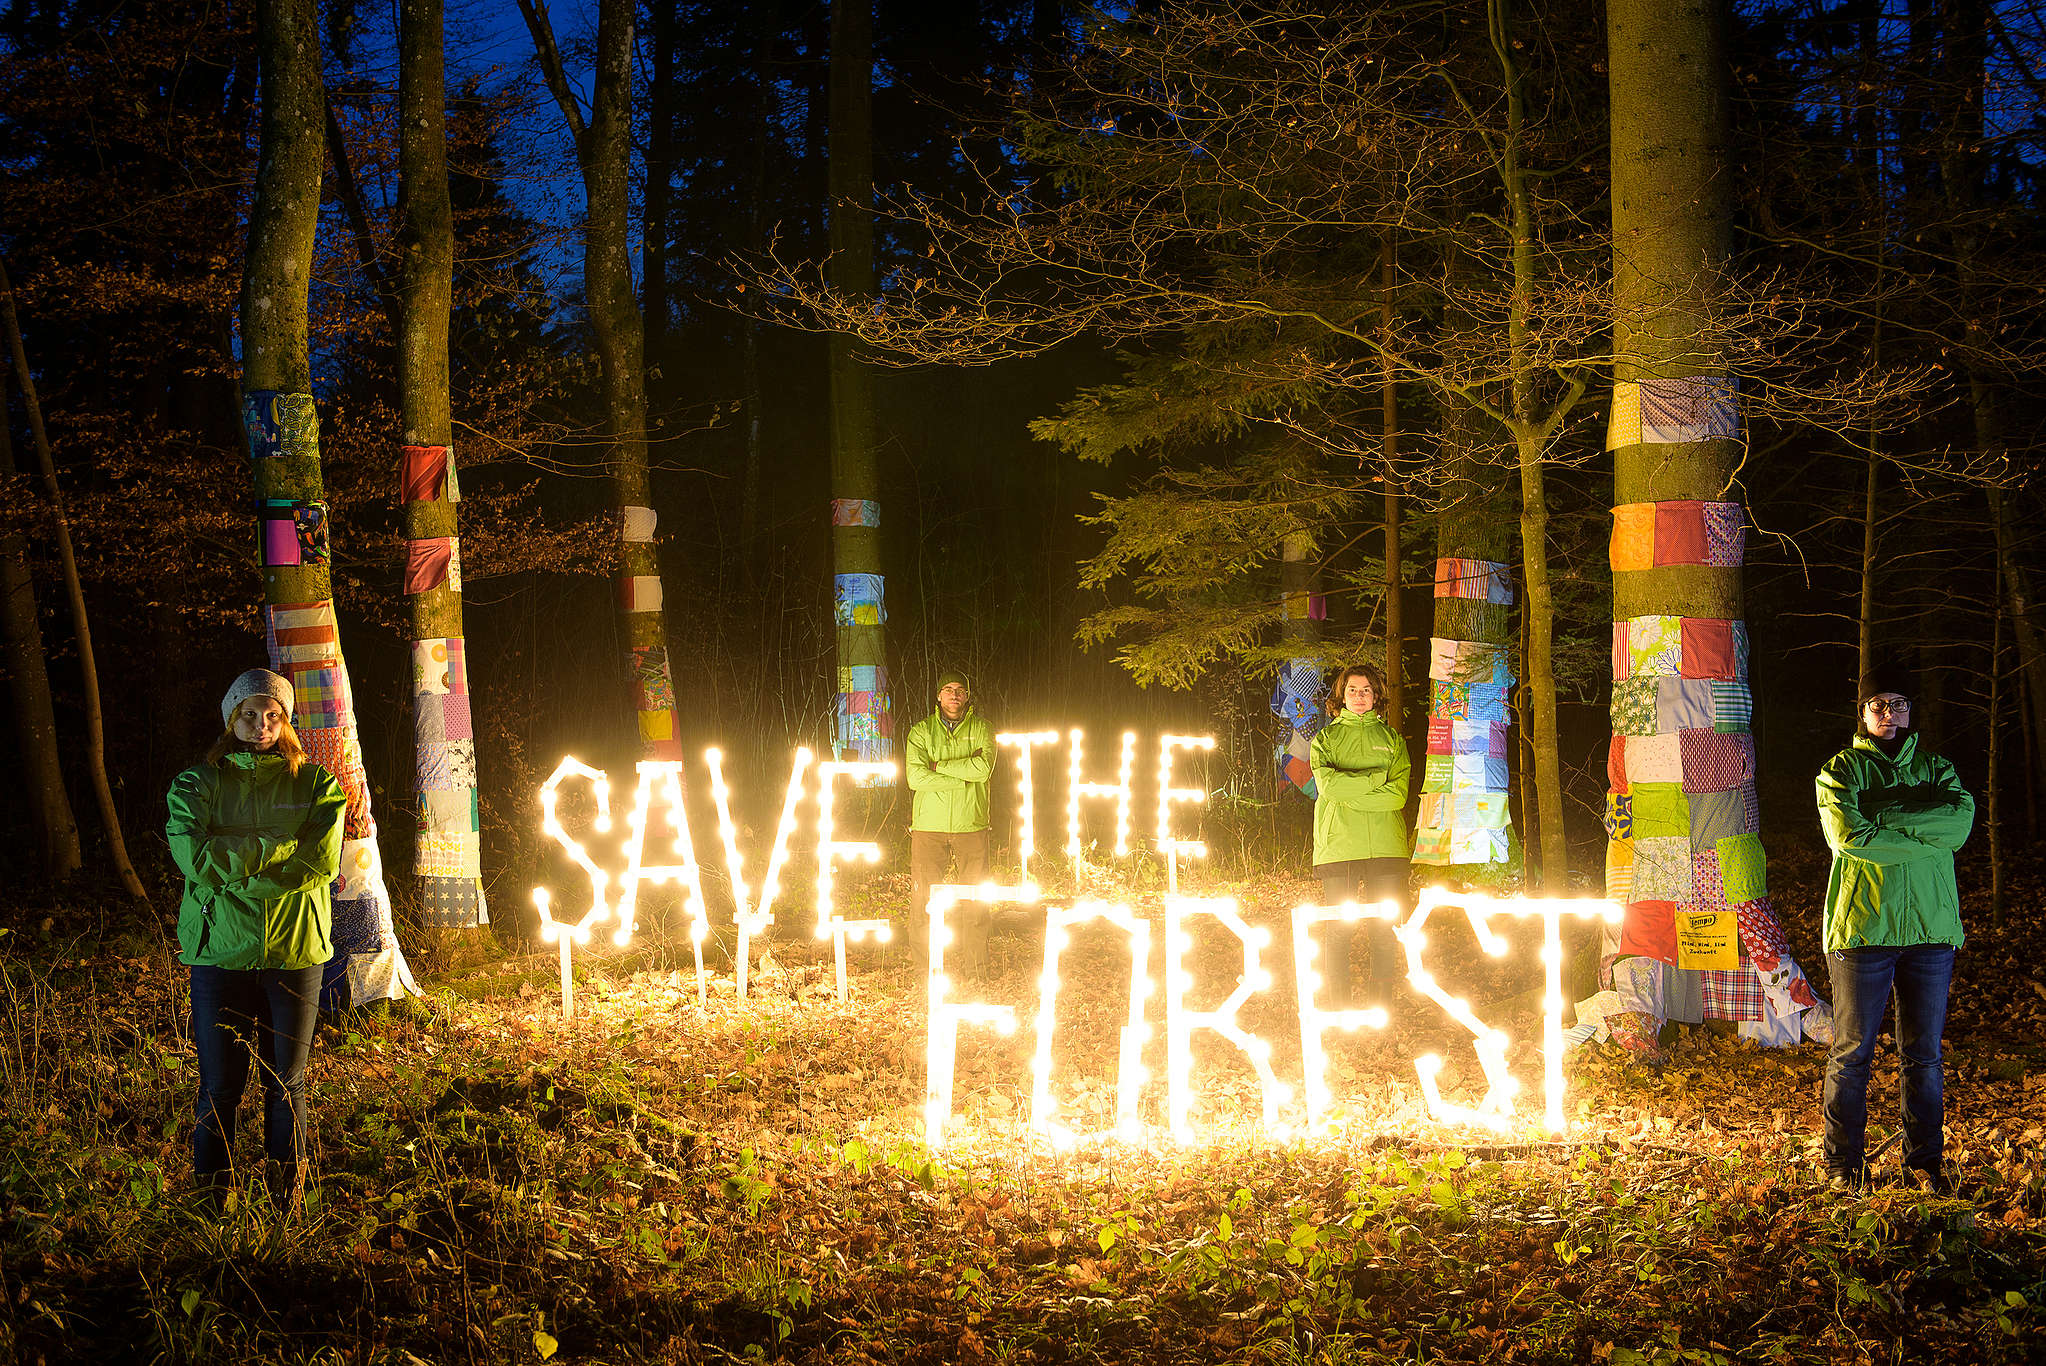 Save the Forest Light Installation in Switzerland